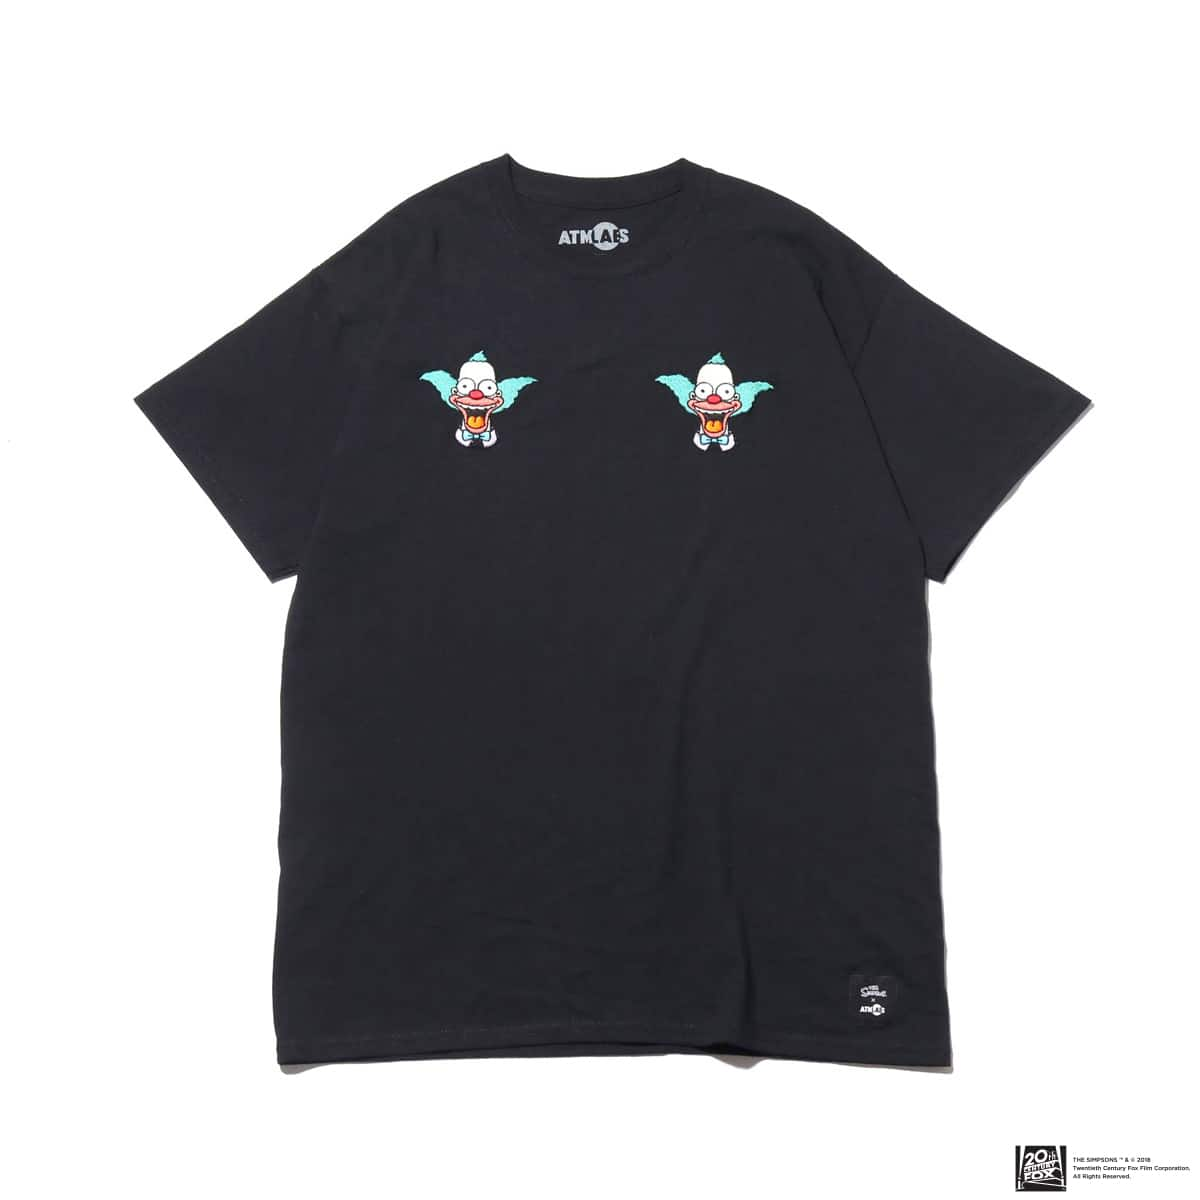 THE SIMPSONS x ATMOS LAB KRUSTY EMBROIDERY TEE  BLACK 18FW-I_photo_large